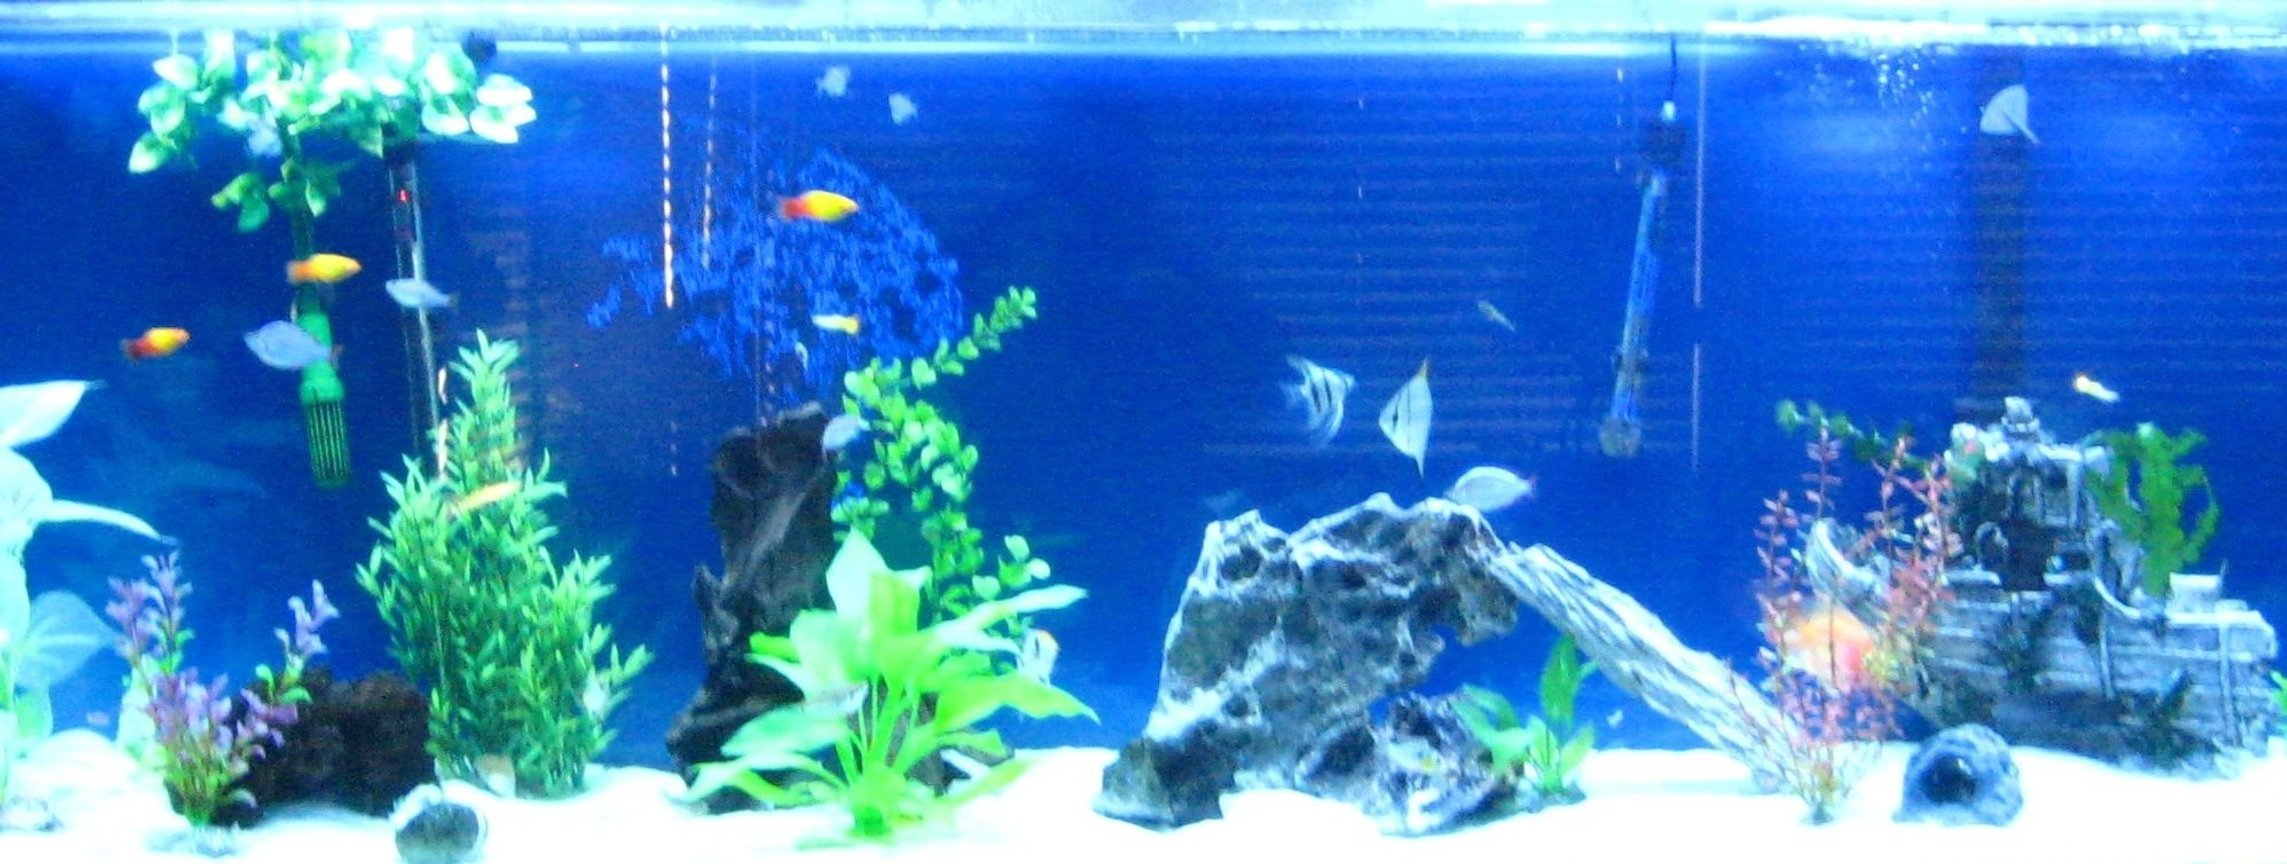 135 gallons freshwater fish tank (mostly fish and non-living decorations) - My 135 gallon tank and i just changed my tank to a salt water tank so i will get those pictures up soon